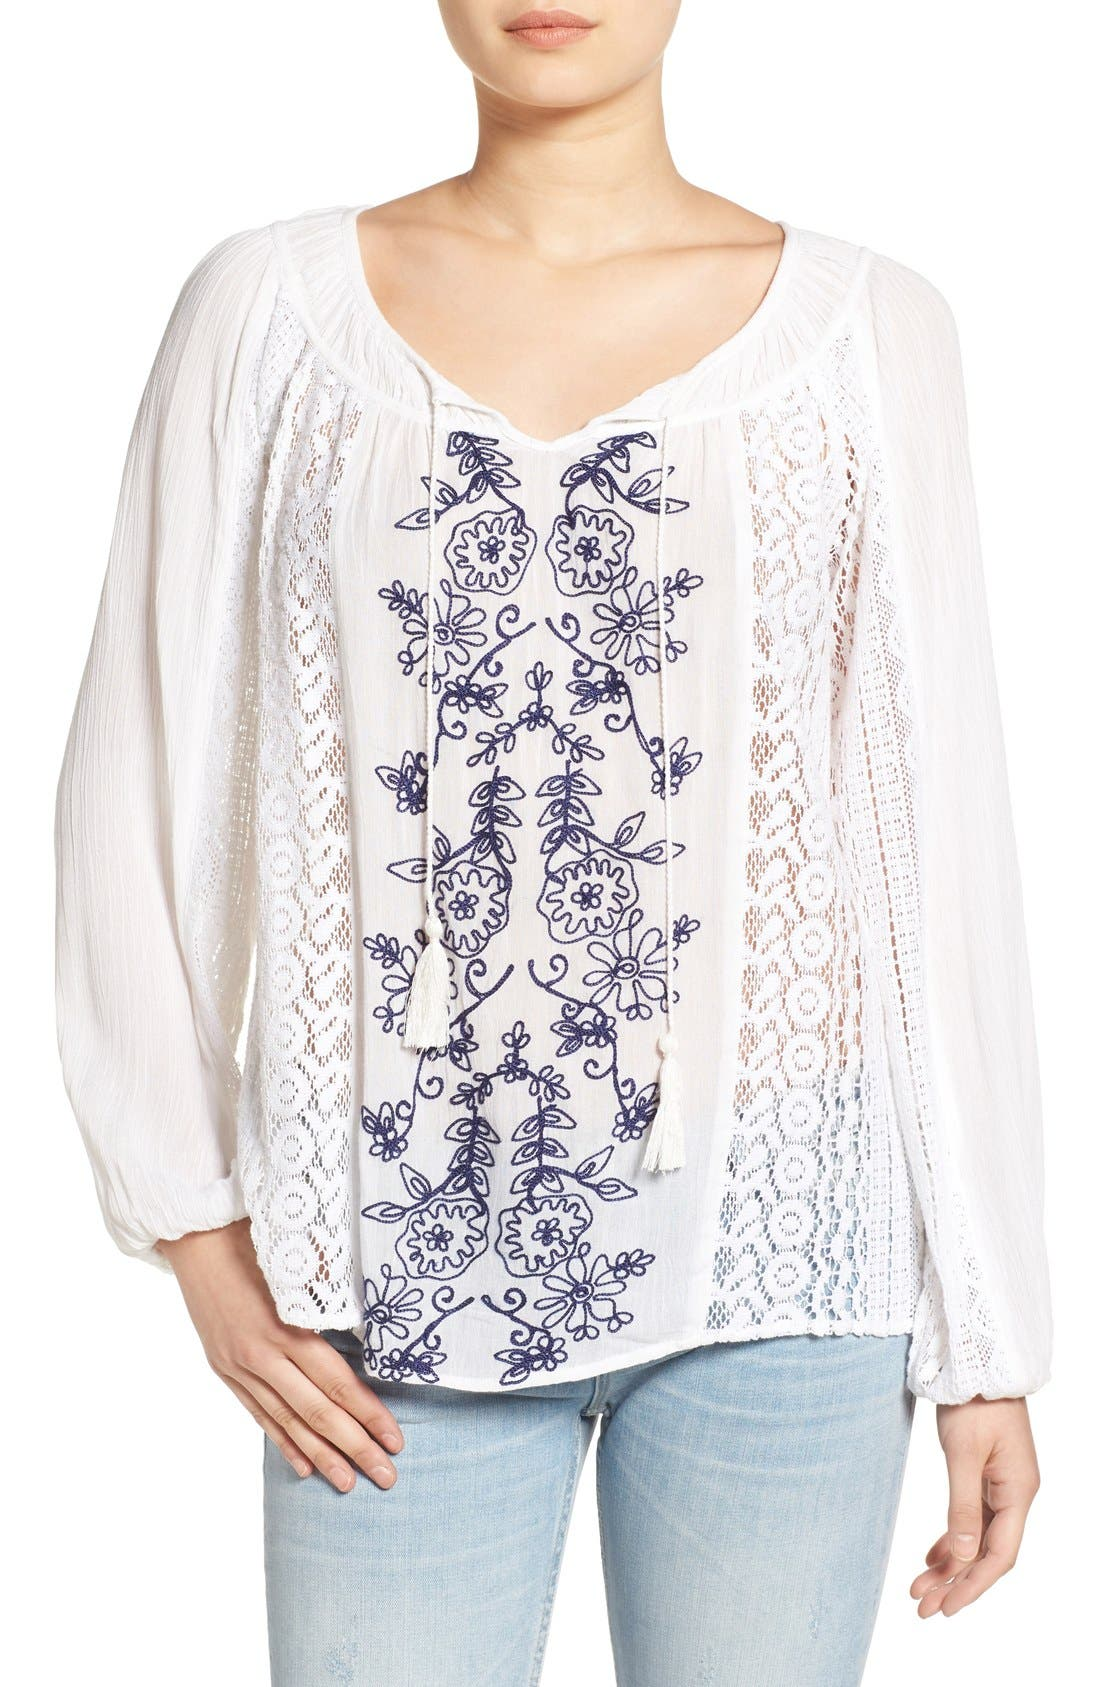 Alternate Image 1 Selected - O'Neill 'Holland' Embroidered Woven Top